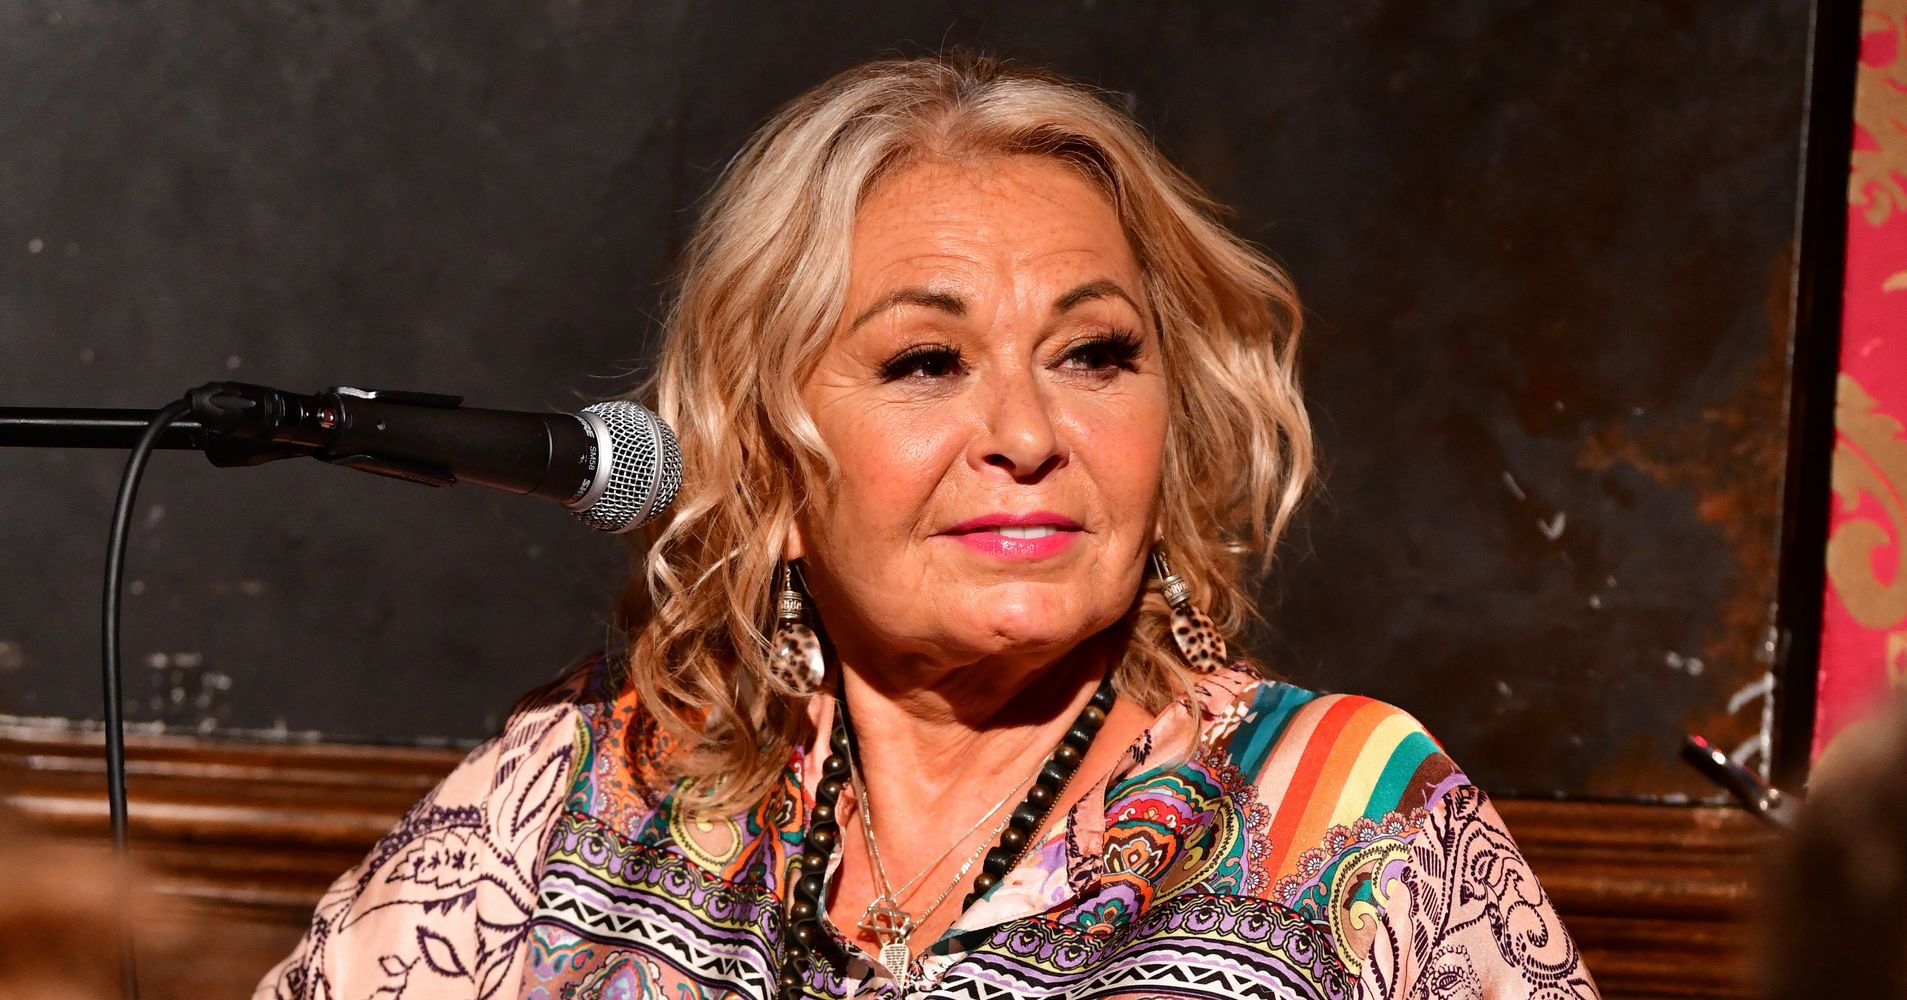 Roseanne Barr Responds To 'The Conners' Premiere In Statement